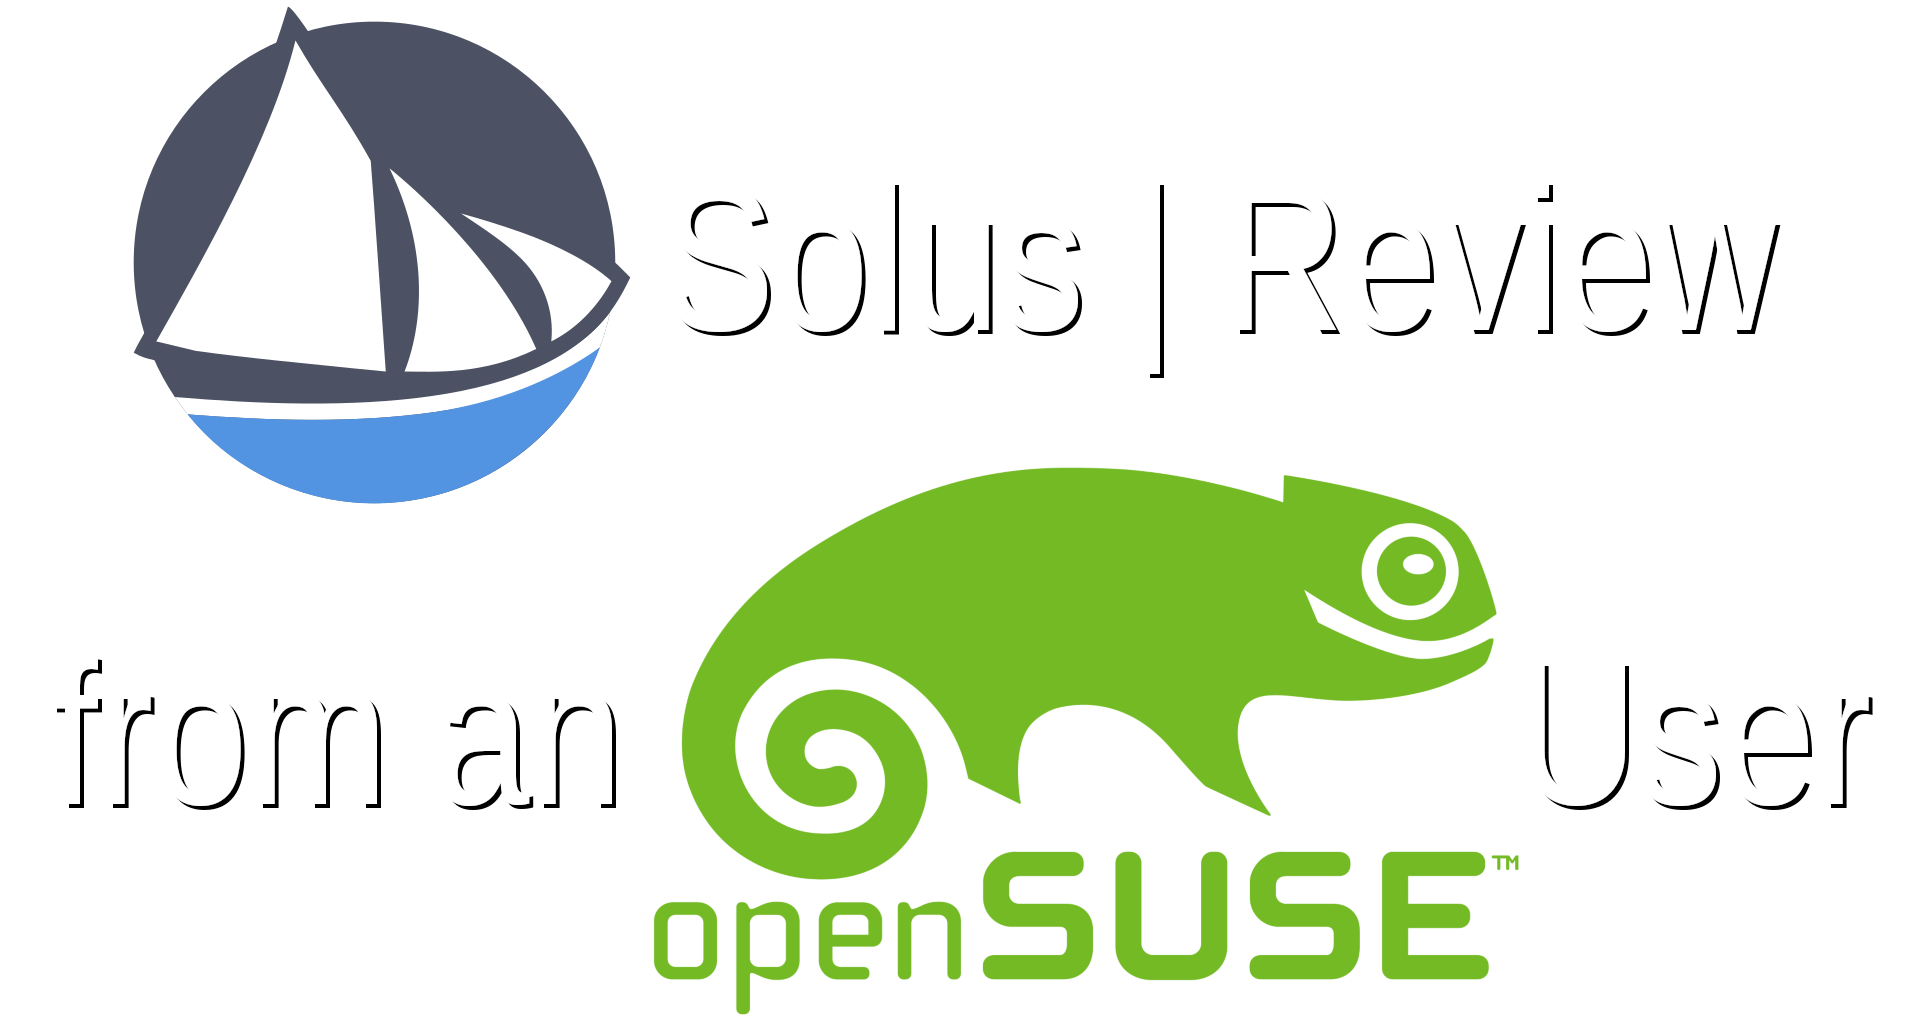 Solus review title